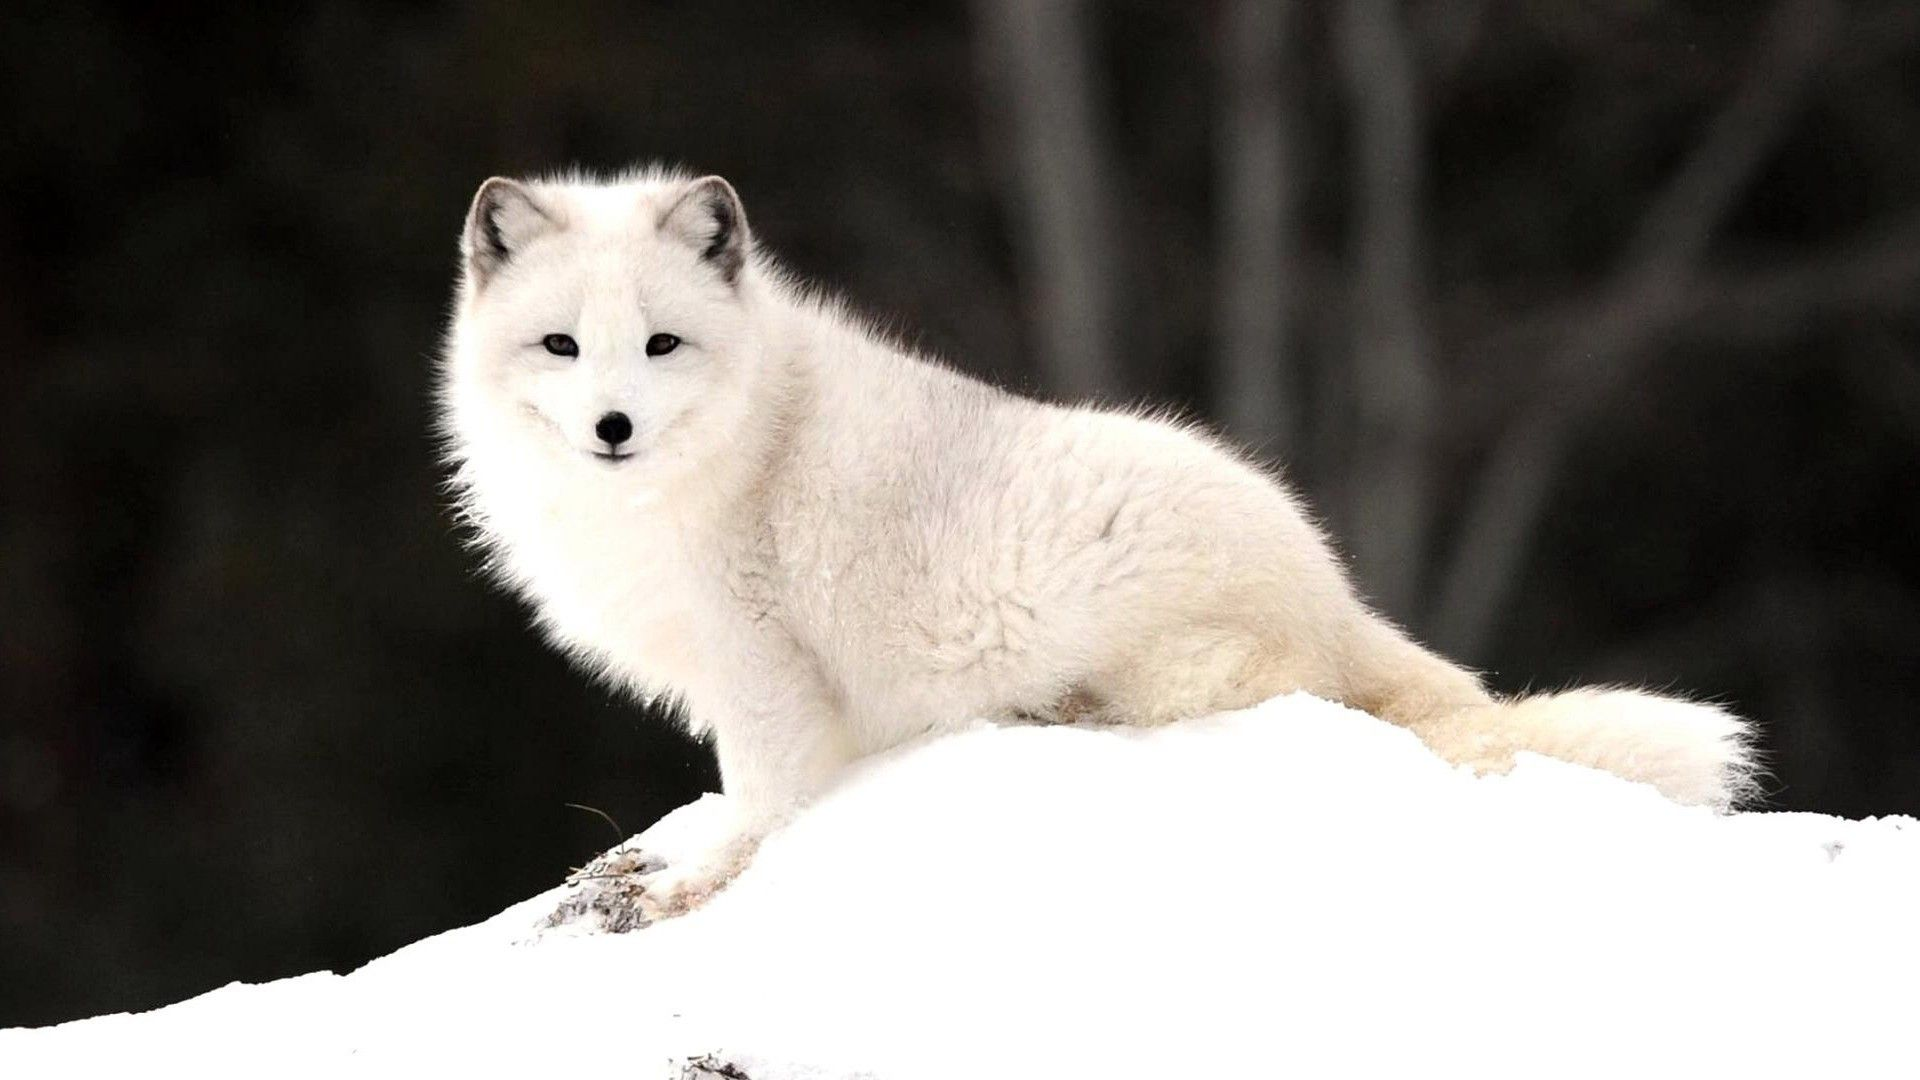 Arctic Fox Wallpaper HD 18655 - Baltana